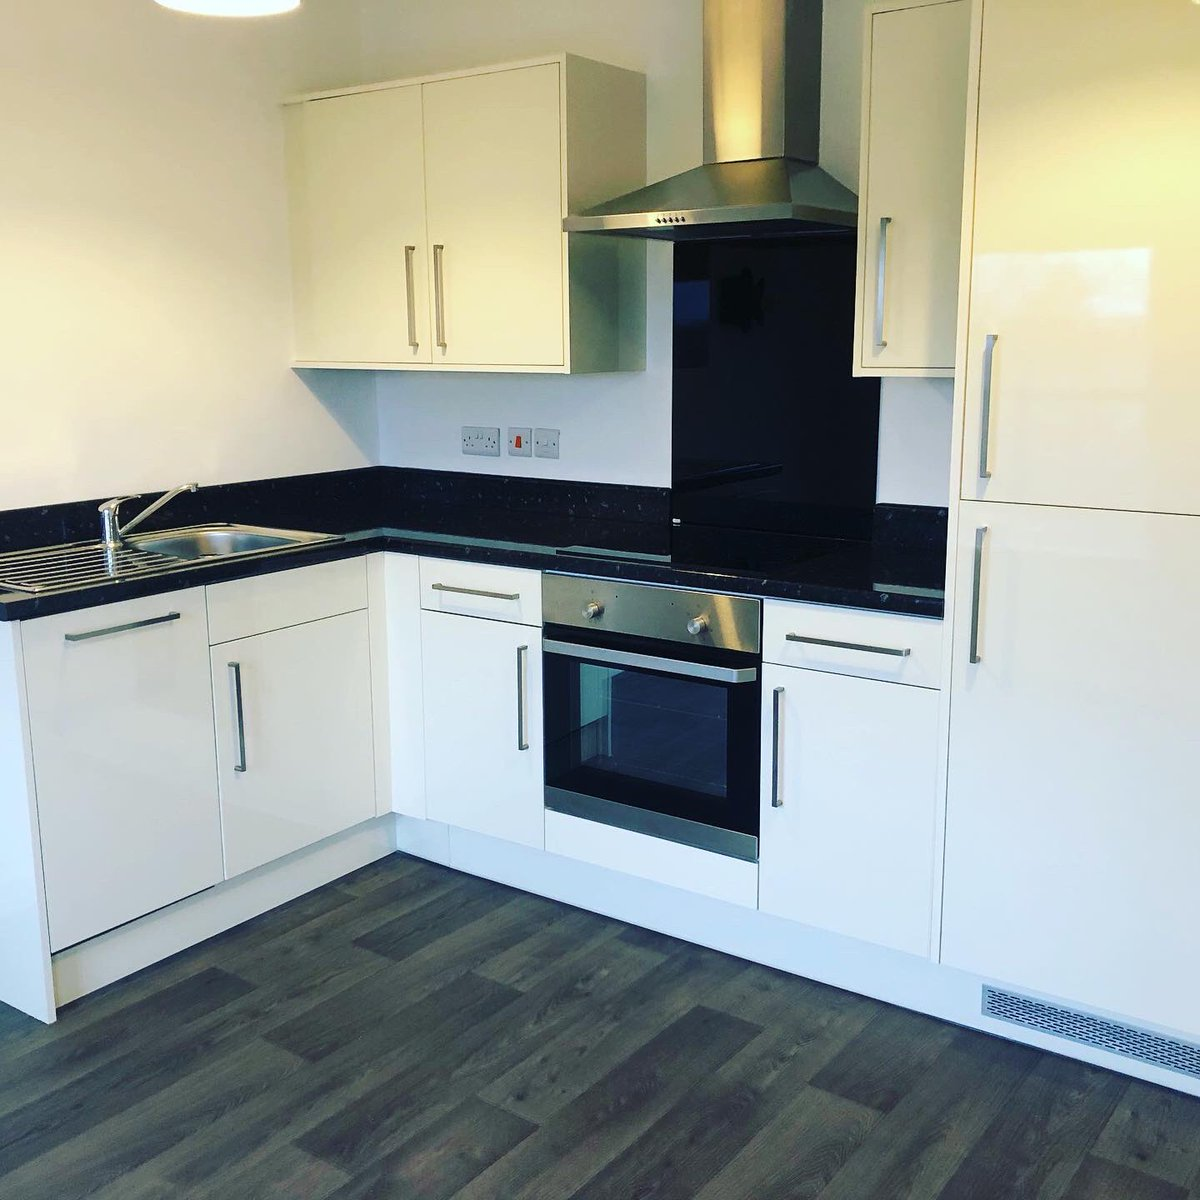 Apartment 8 Endsleigh Park 📌  2 bedroom unfurnished top floor apartment with all bills included.   Finished to an impeccable standard and topped off with an individual chic finish.   Call to view virtually or in person for £850 pcm. 01482 680990 07863058702 #thursdaymorning